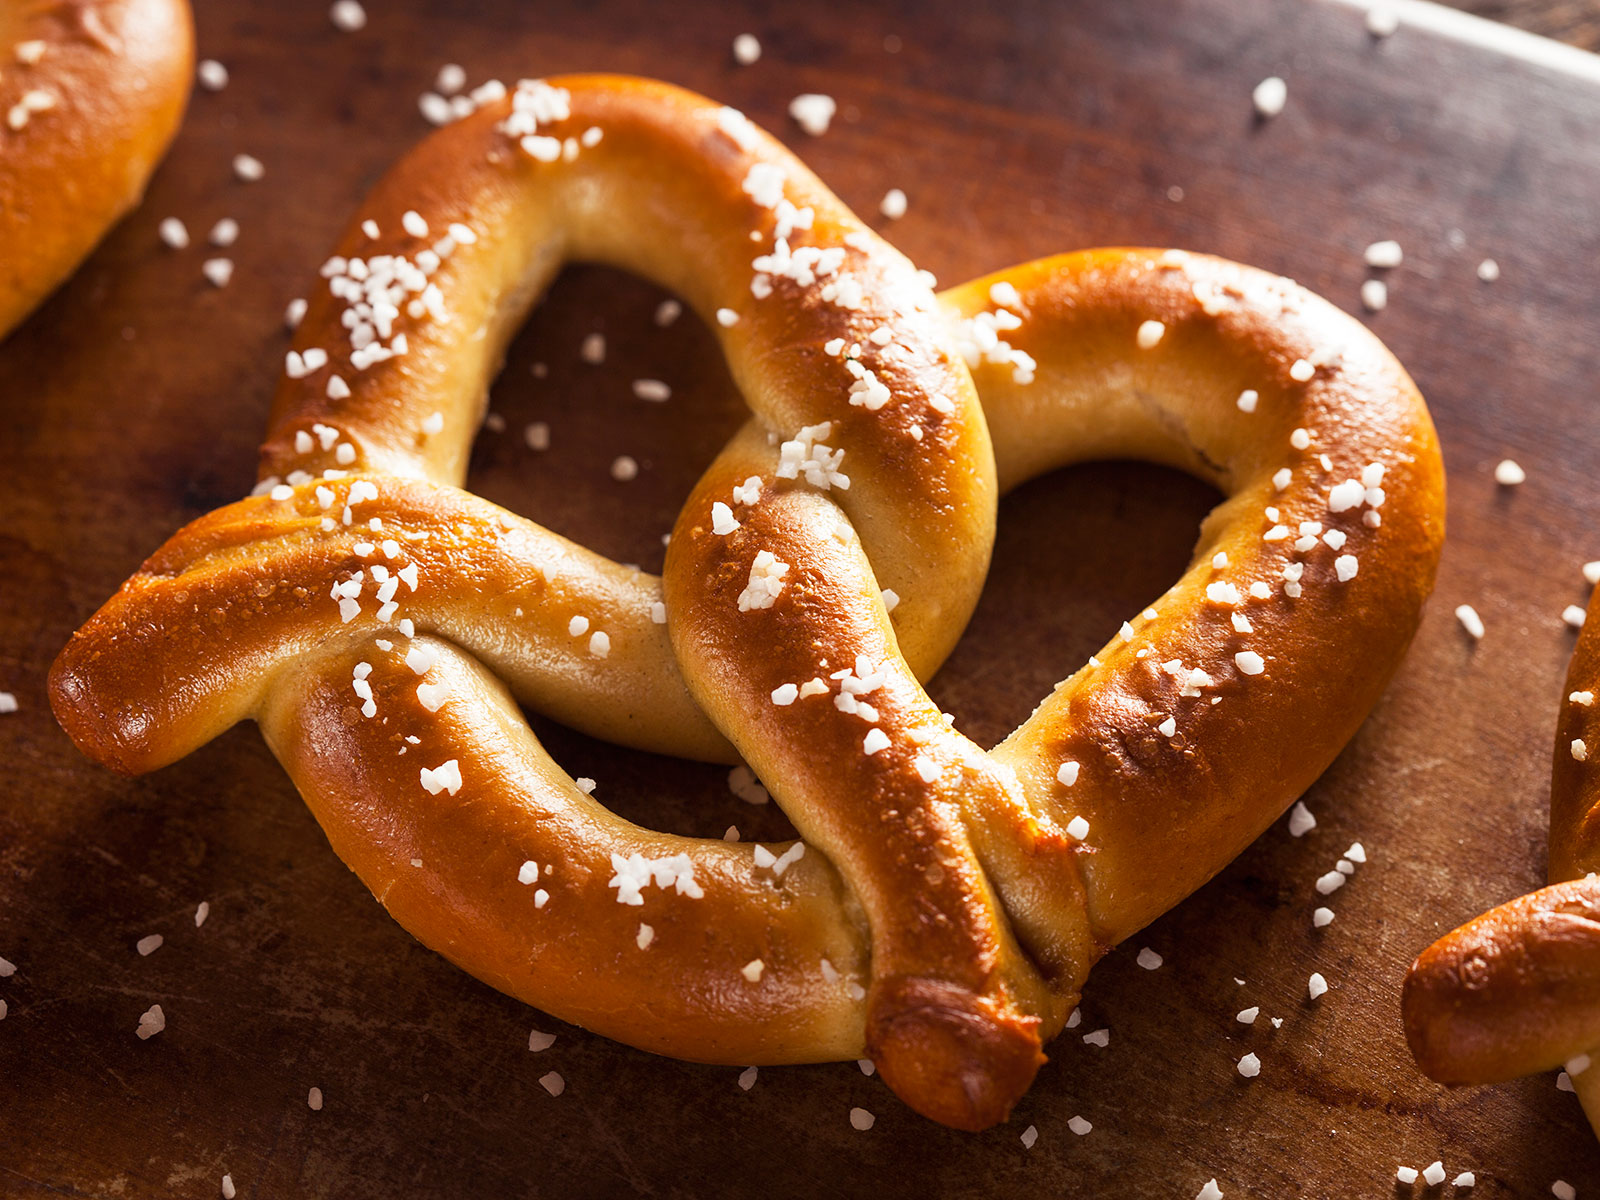 Everything You Need to Make Your Own Pretzels